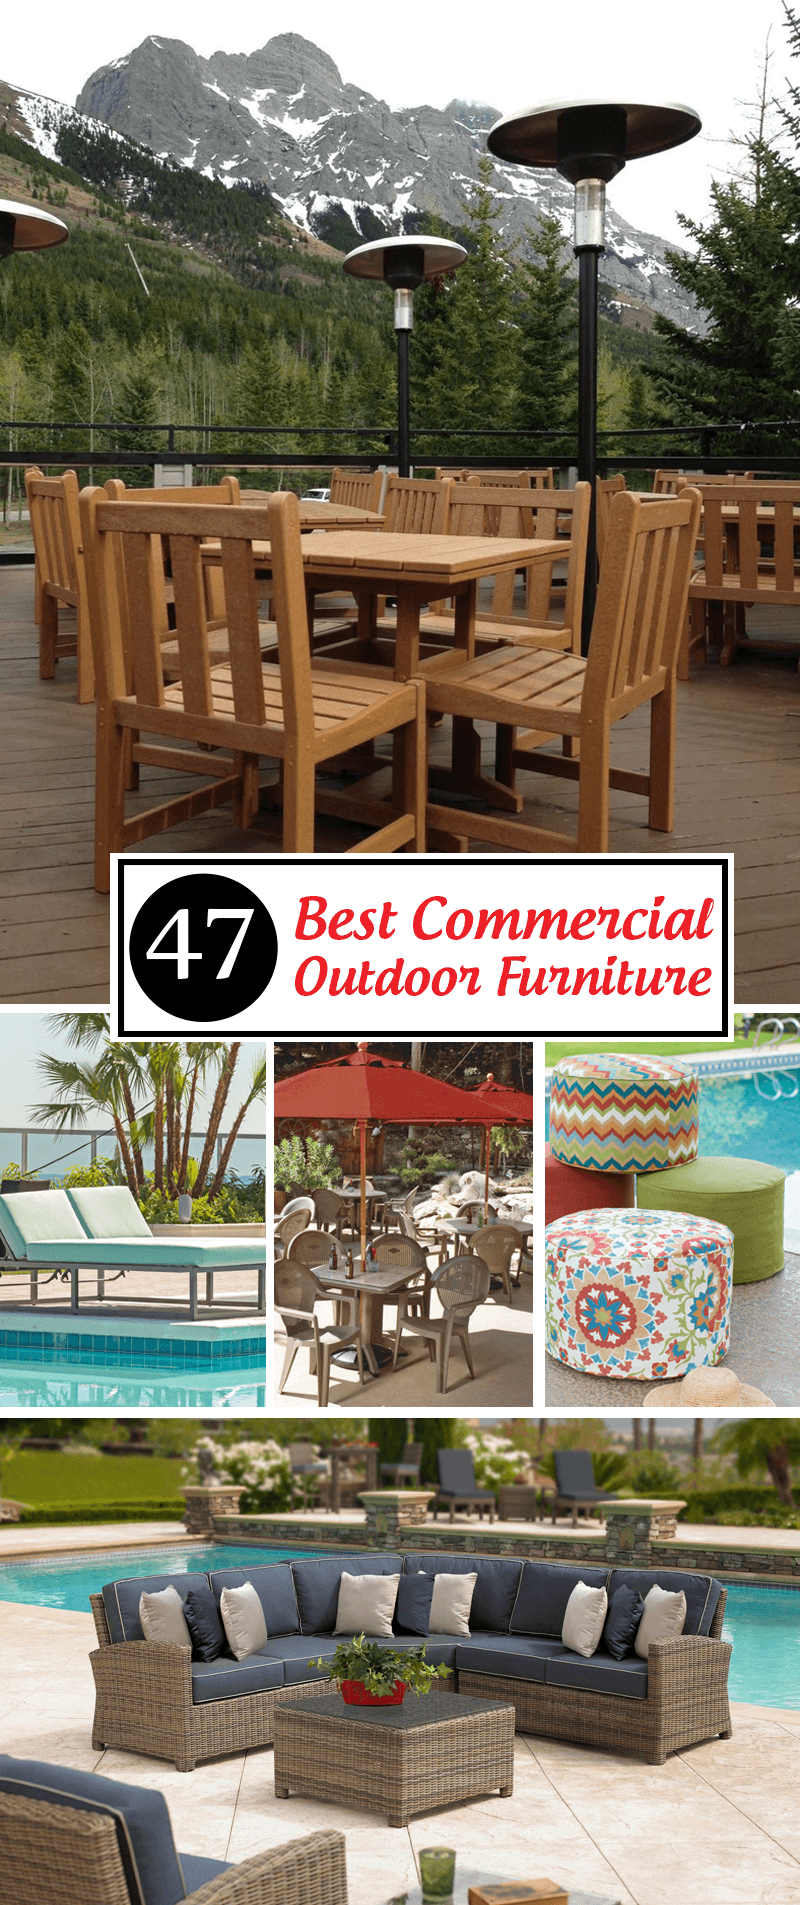 Best Commercial Outdoor Furniture